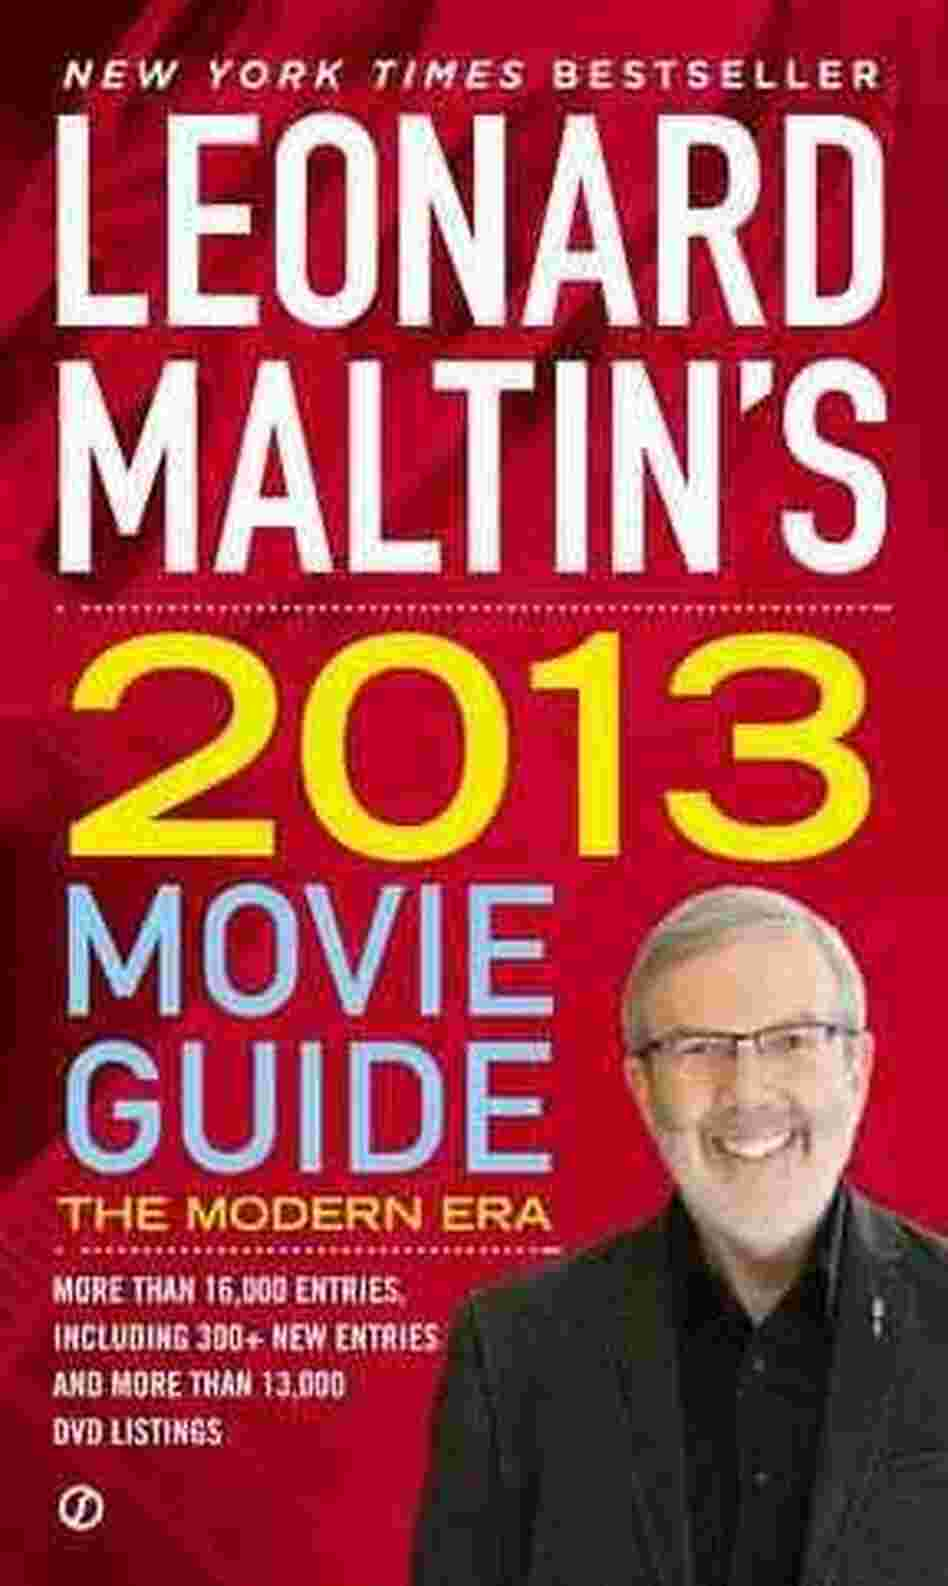 Leonard Maltin's Movie Guide 2013